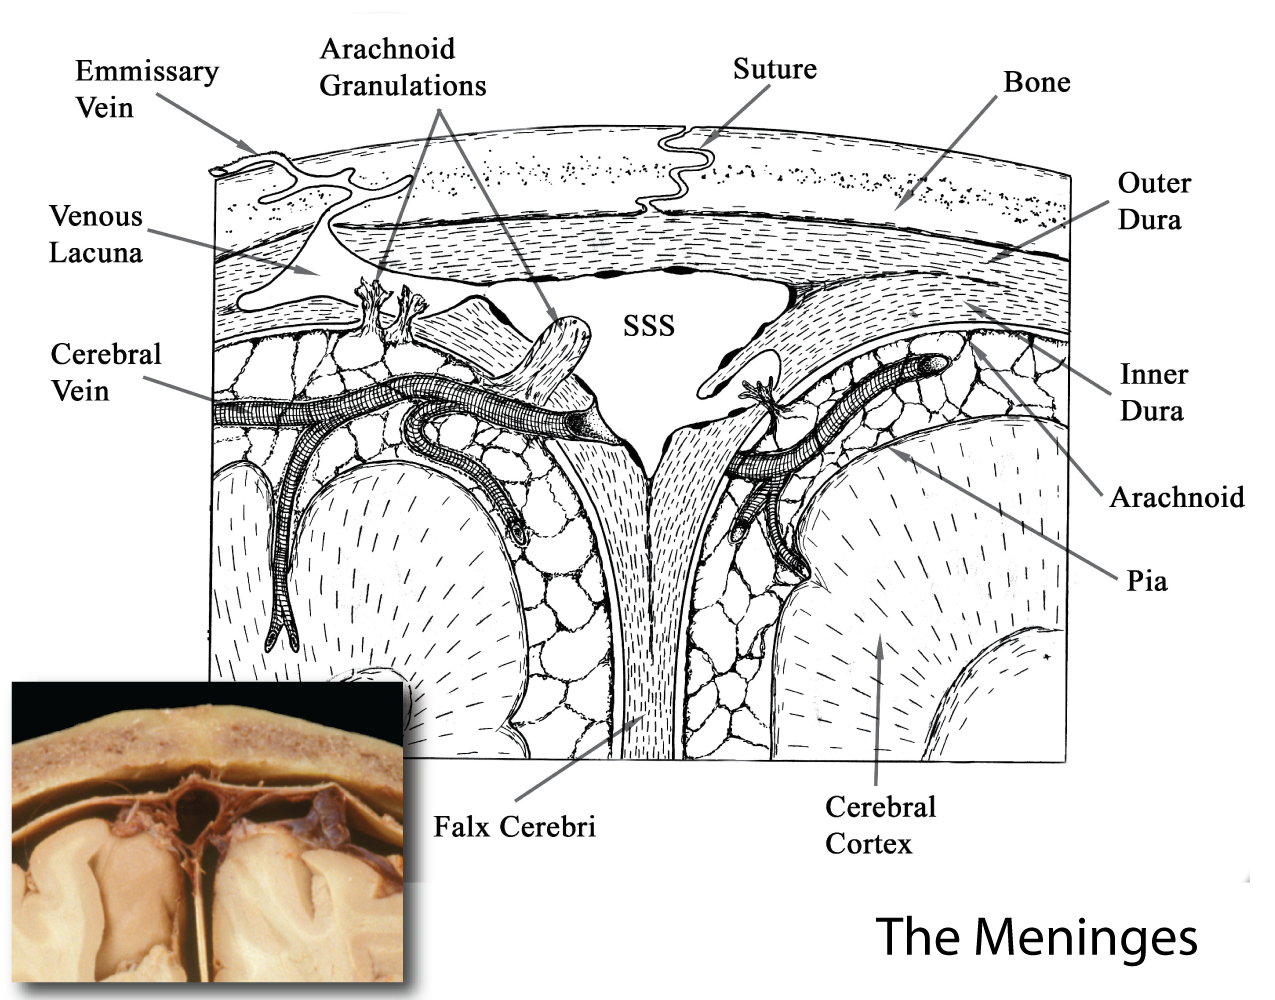 Meninges microarchitecture enlarge image in new window ccuart Images